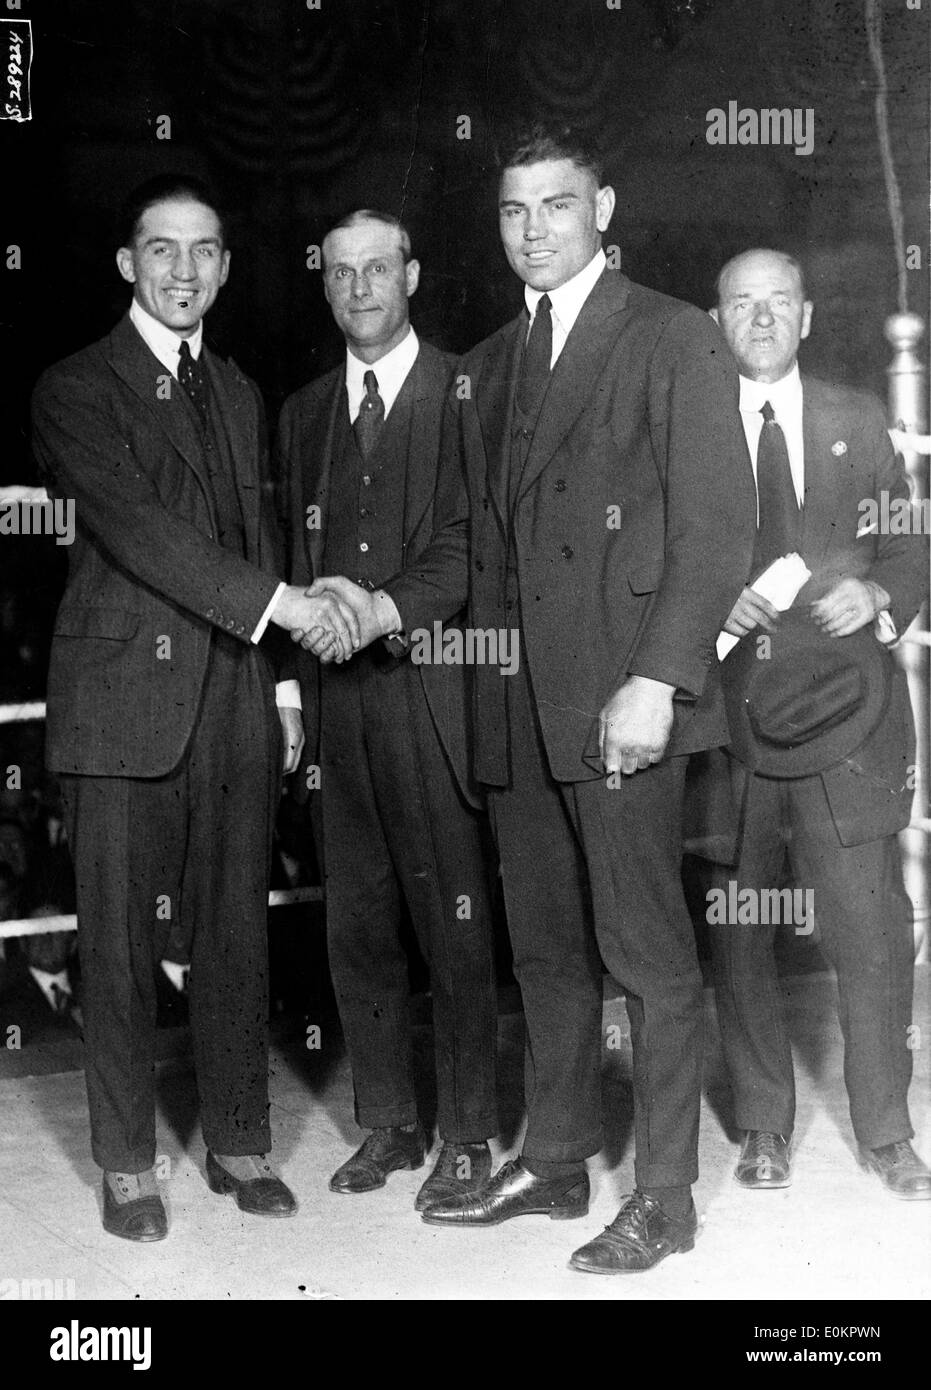 Boxer Jack Dempsey shaking hands before a fight - Stock Image